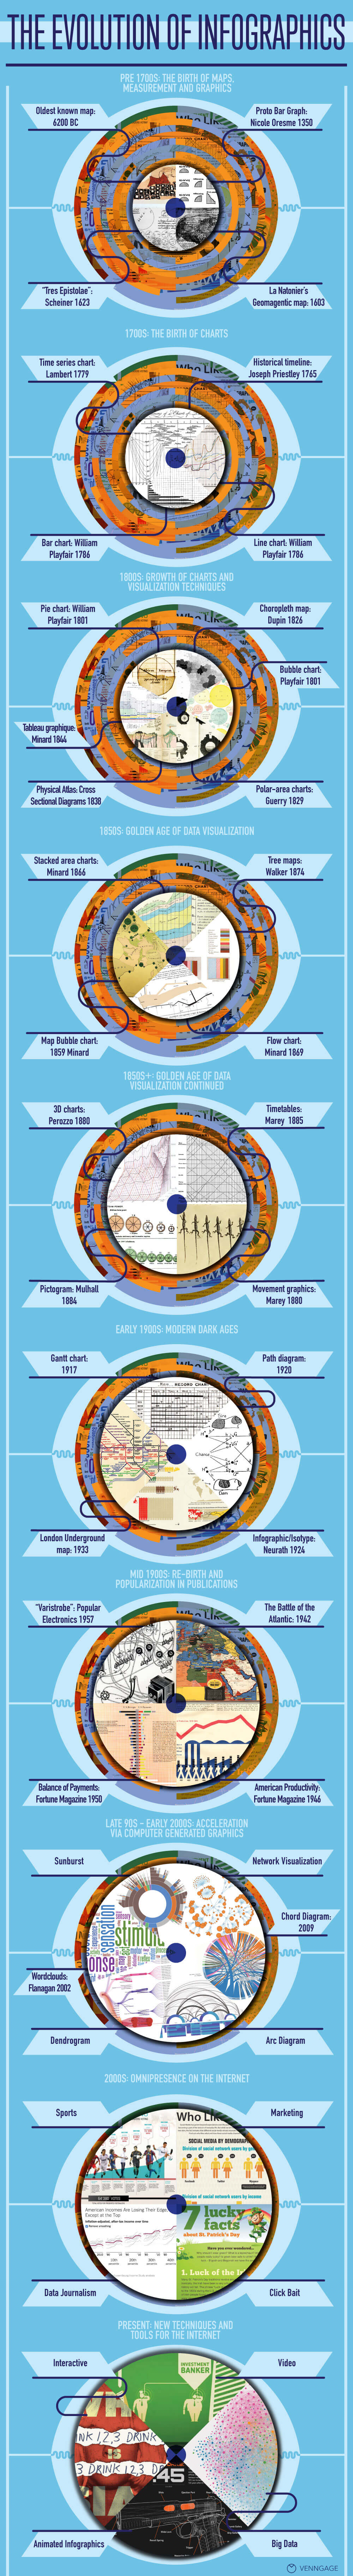 evolution-infographics-venngage